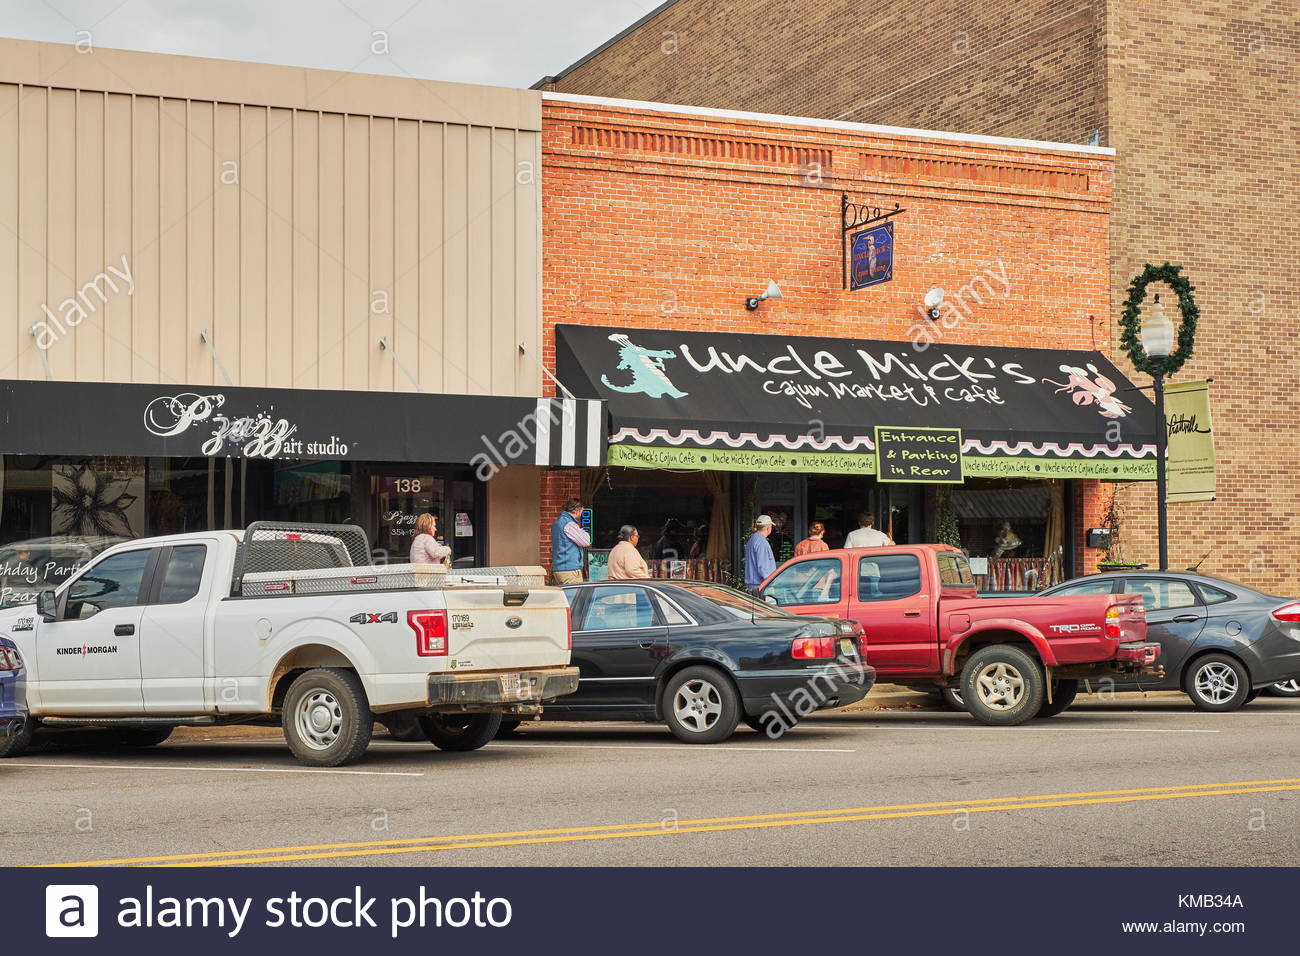 People lined up or queuing to enter a small cafe and market in Clanton Alabama, USA, a small rural town in Alabama. - Stock Image